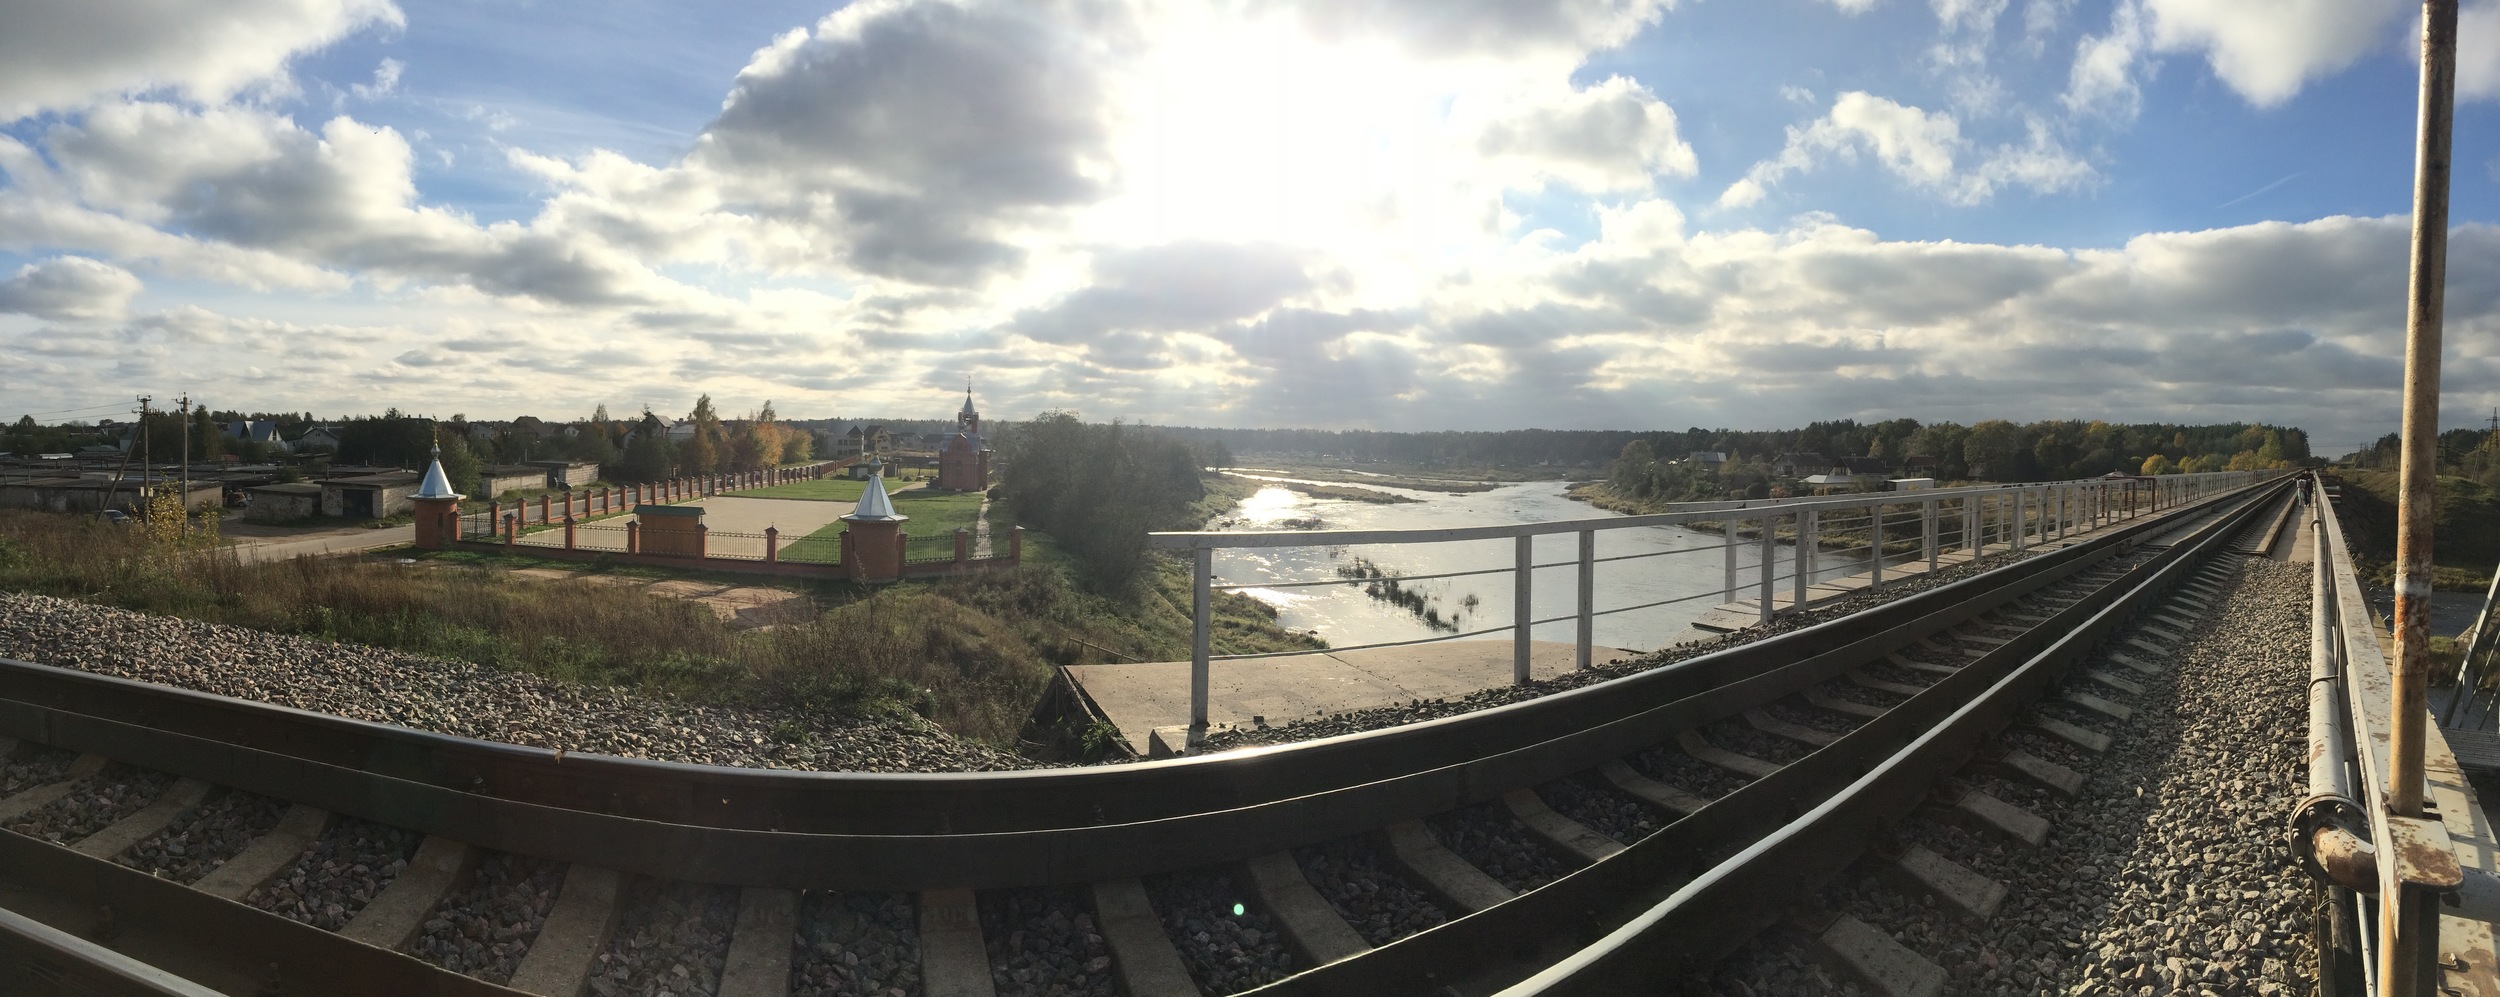 Panorama of the train tracks crossing the Luga River in Kingisepp.